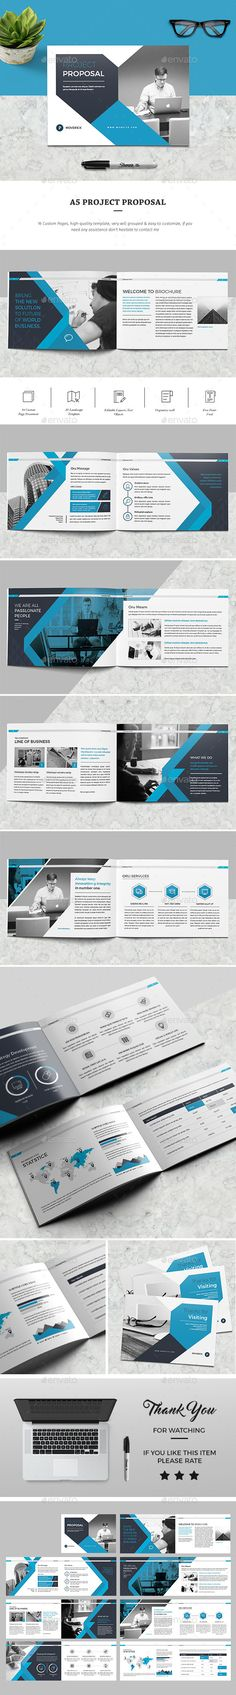 A5 Proposal Template InDesign INDD